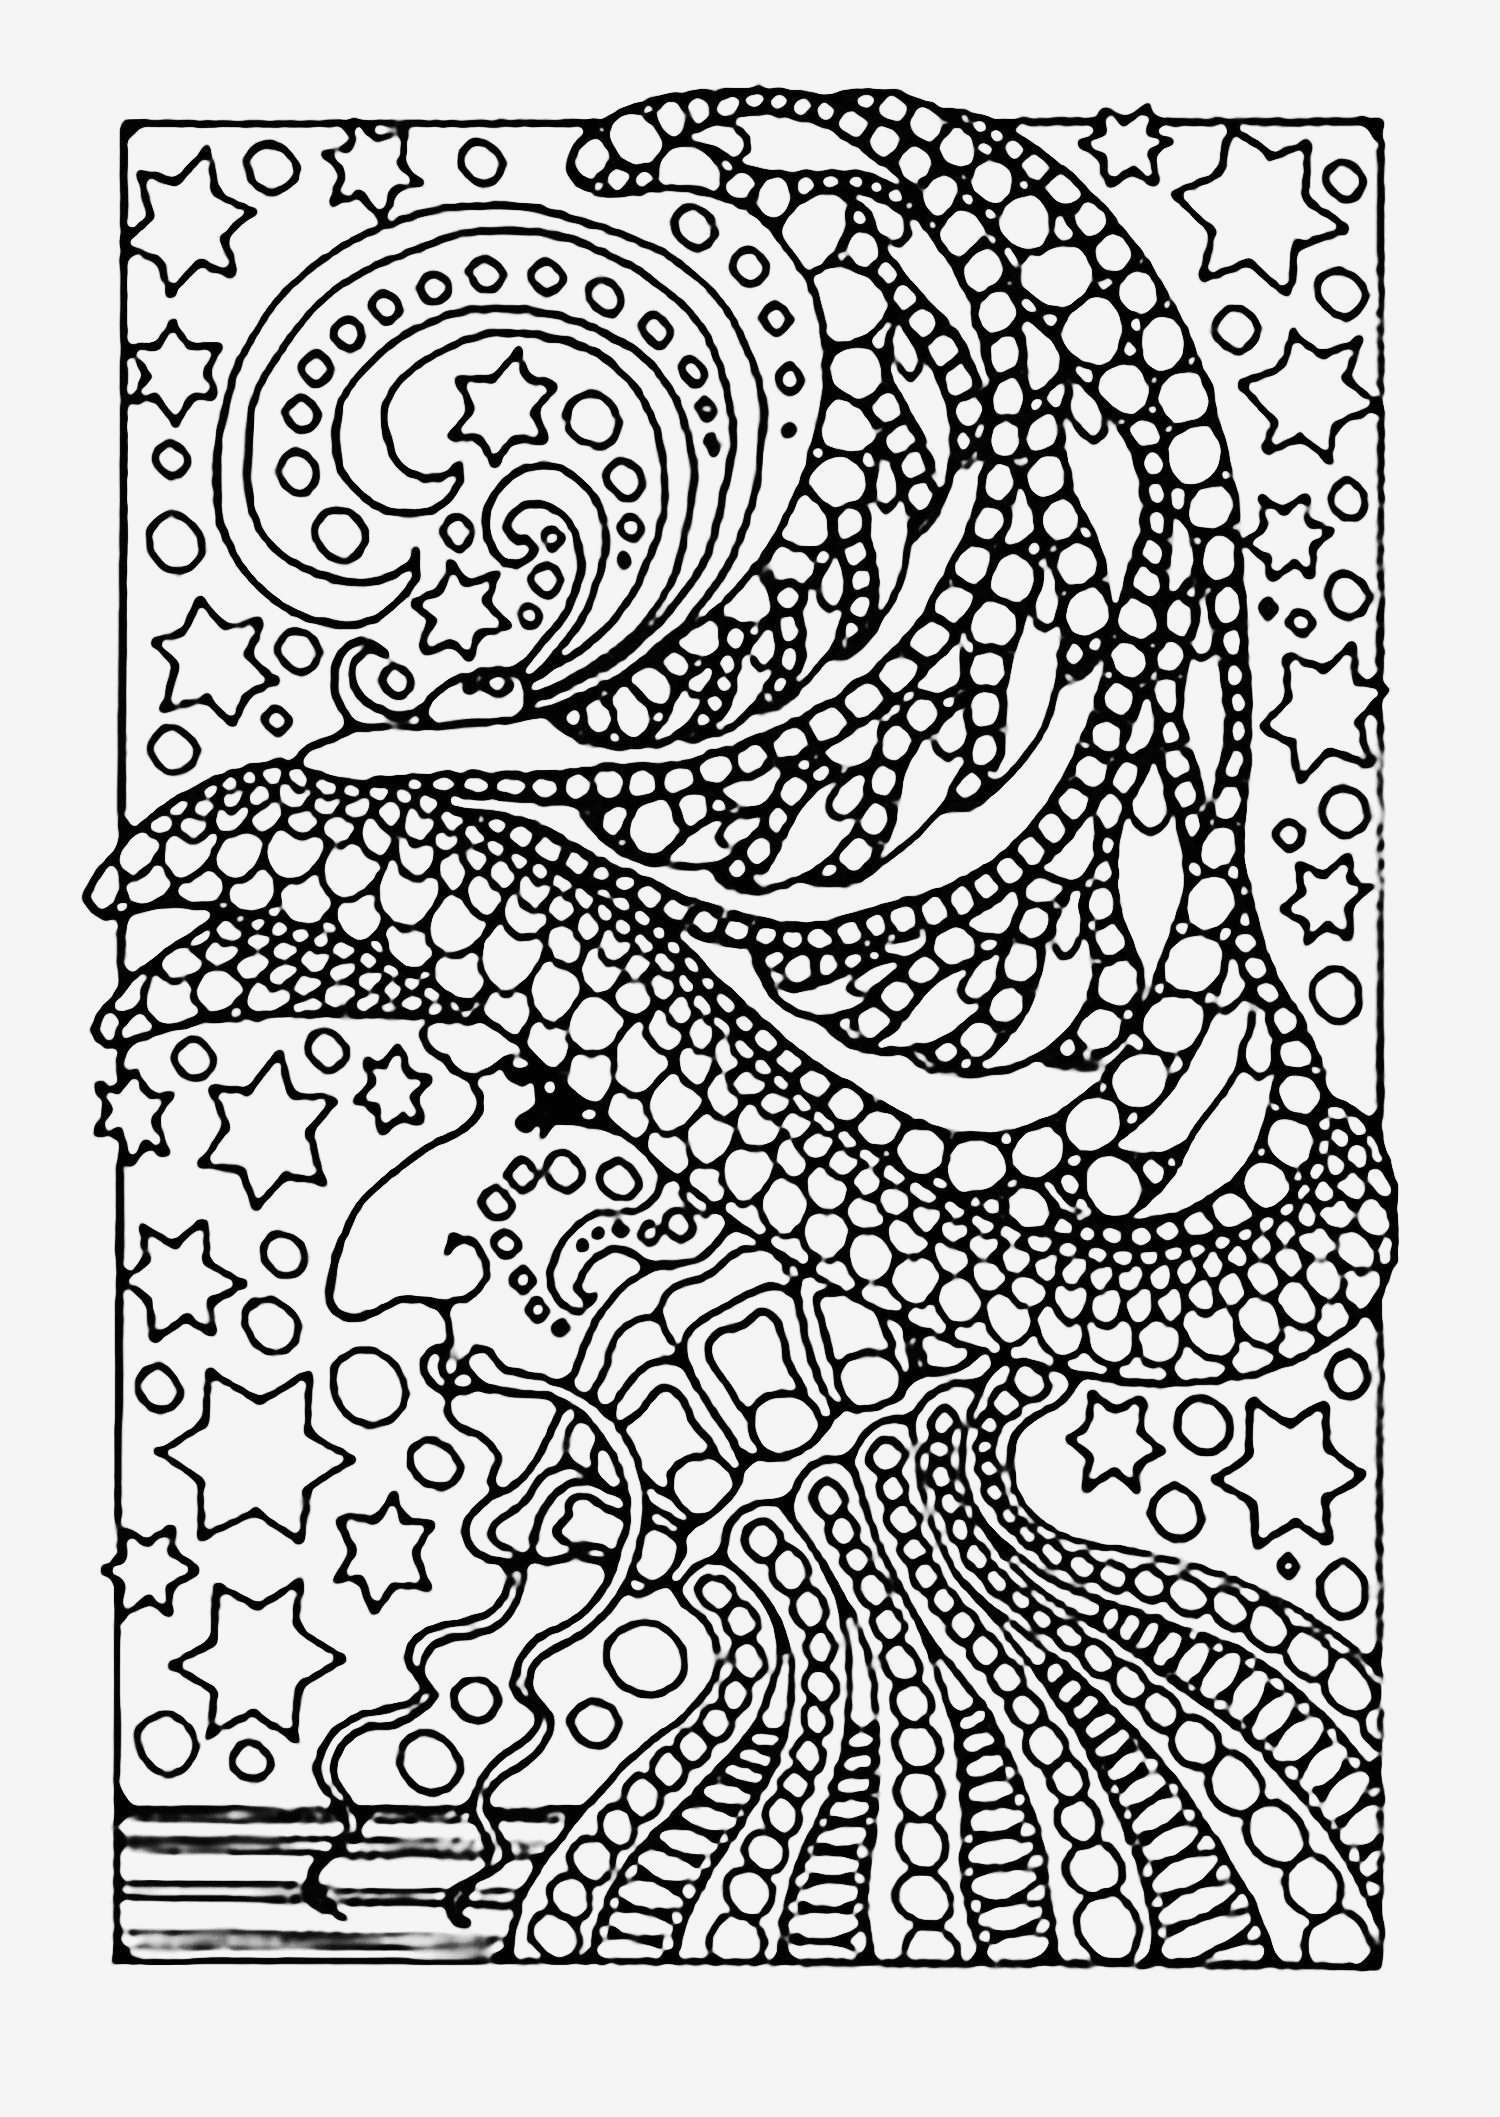 Human Heart Coloring Pages  Gallery 1g - Free Download